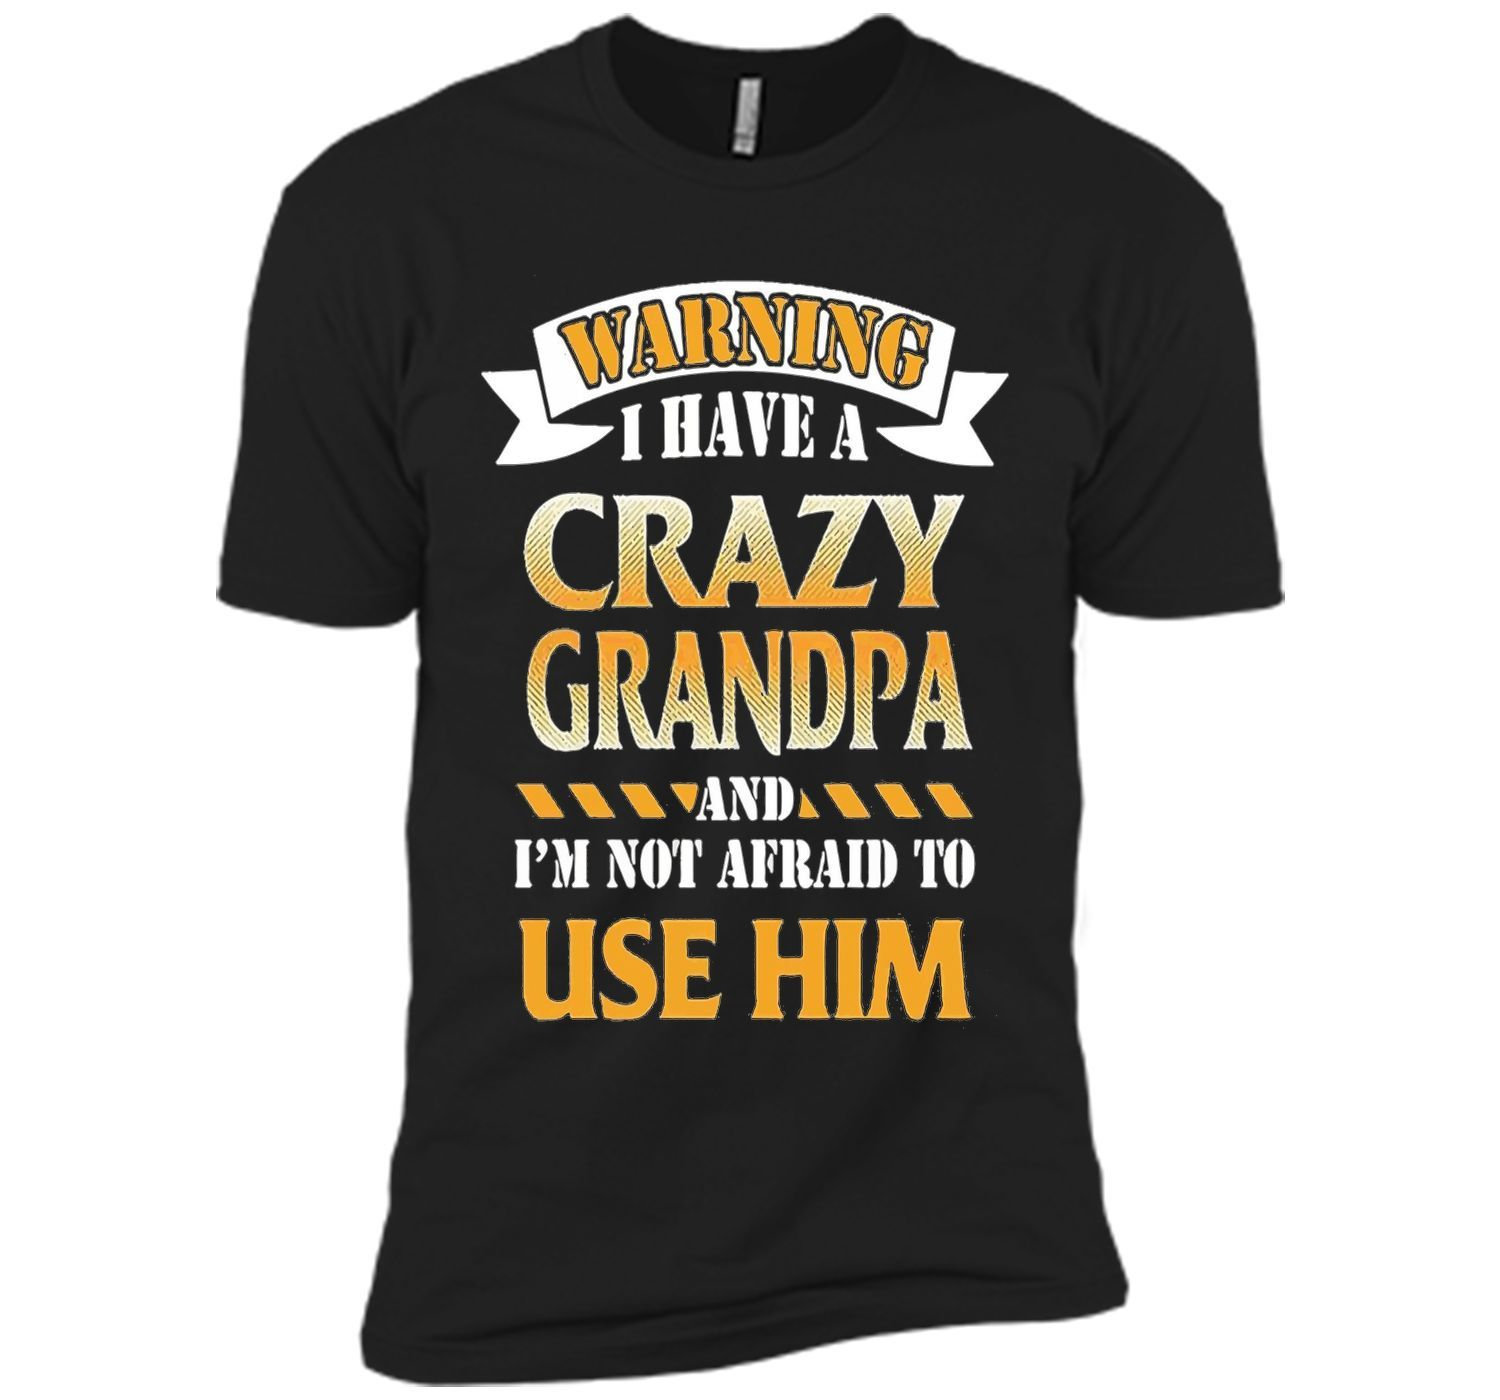 9cbf83f3 Warning I have a crazy Grandpa T-shirt, Funny Gift for Kids ...